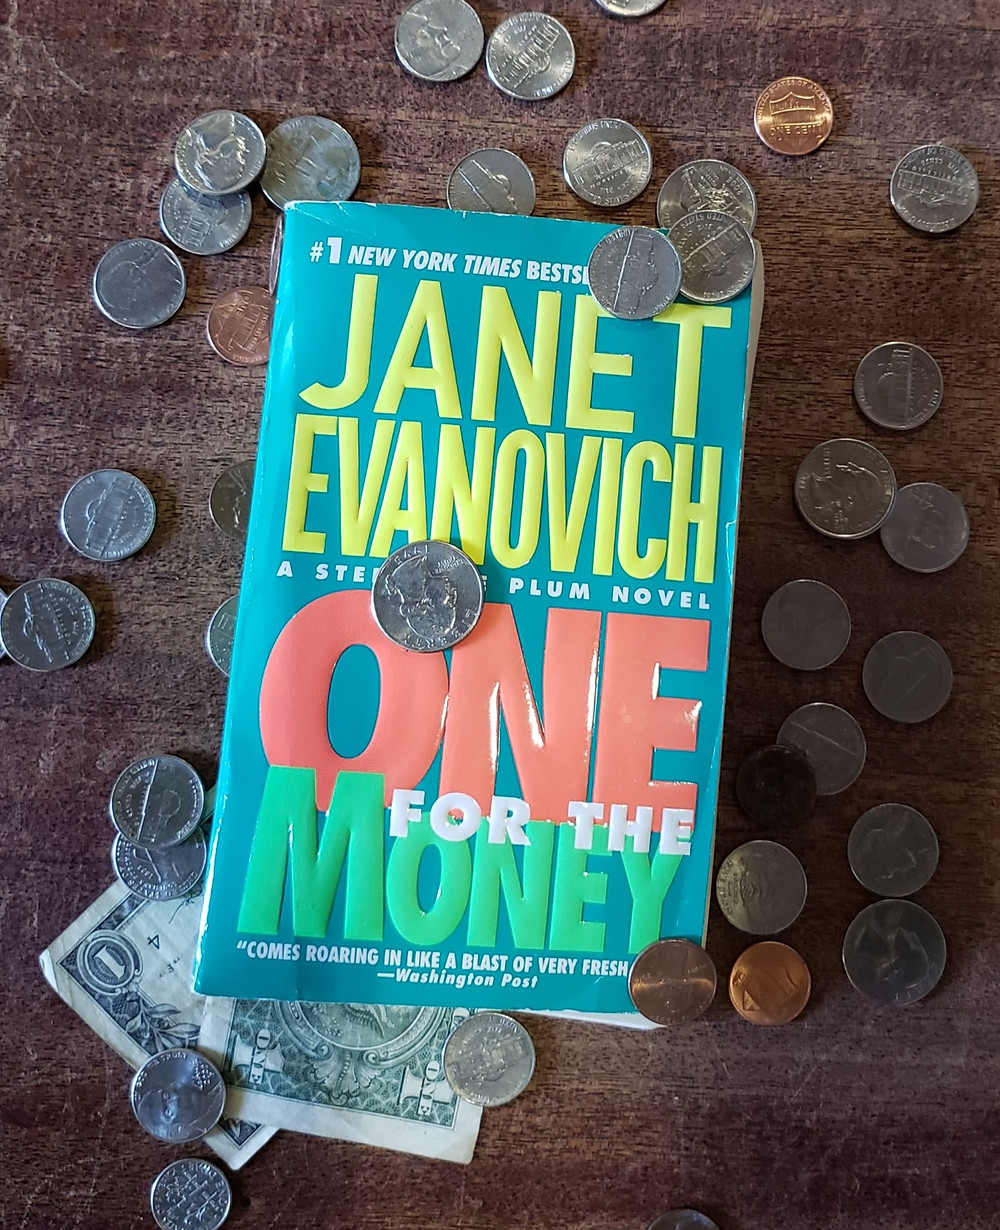 The book One for the Money by Janet Evanovich is laying on a wooden background surrounded by coins. A one dollar bill is tucked under the book's lower left corner.